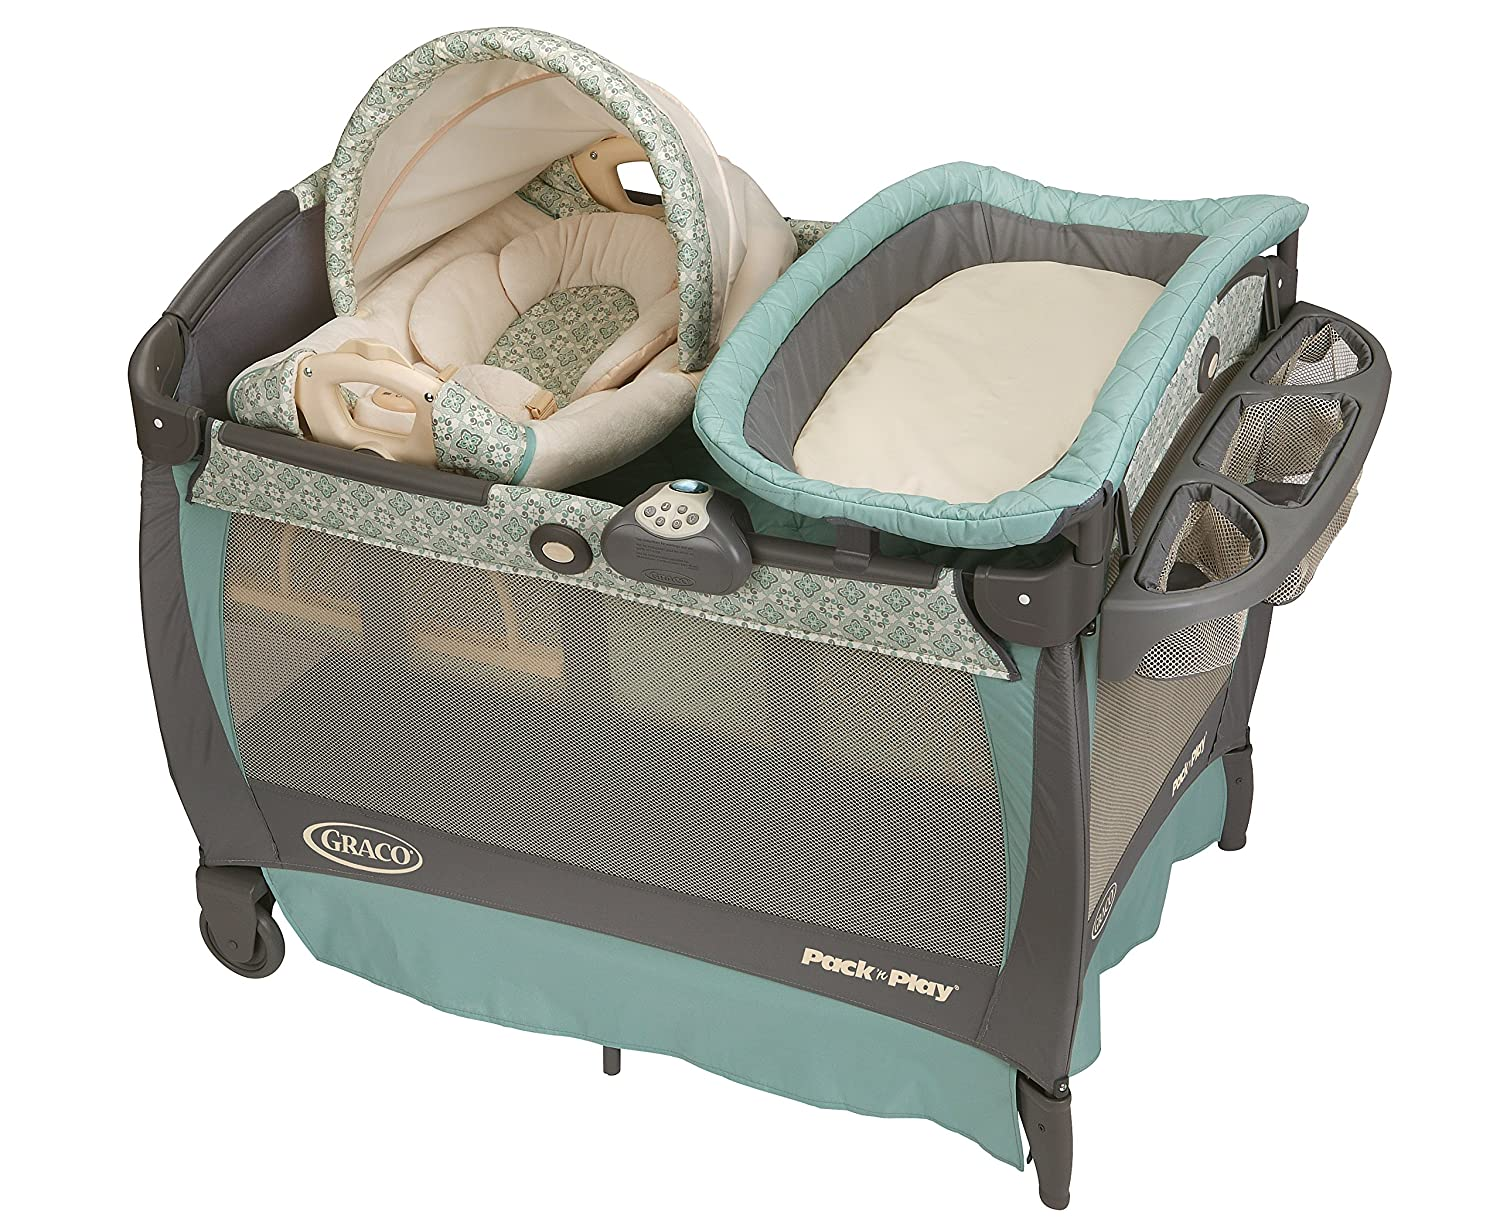 Graco Pack'n Play Playard Bassinet Changer with Cuddle Cove Rocking Seat, Winslet